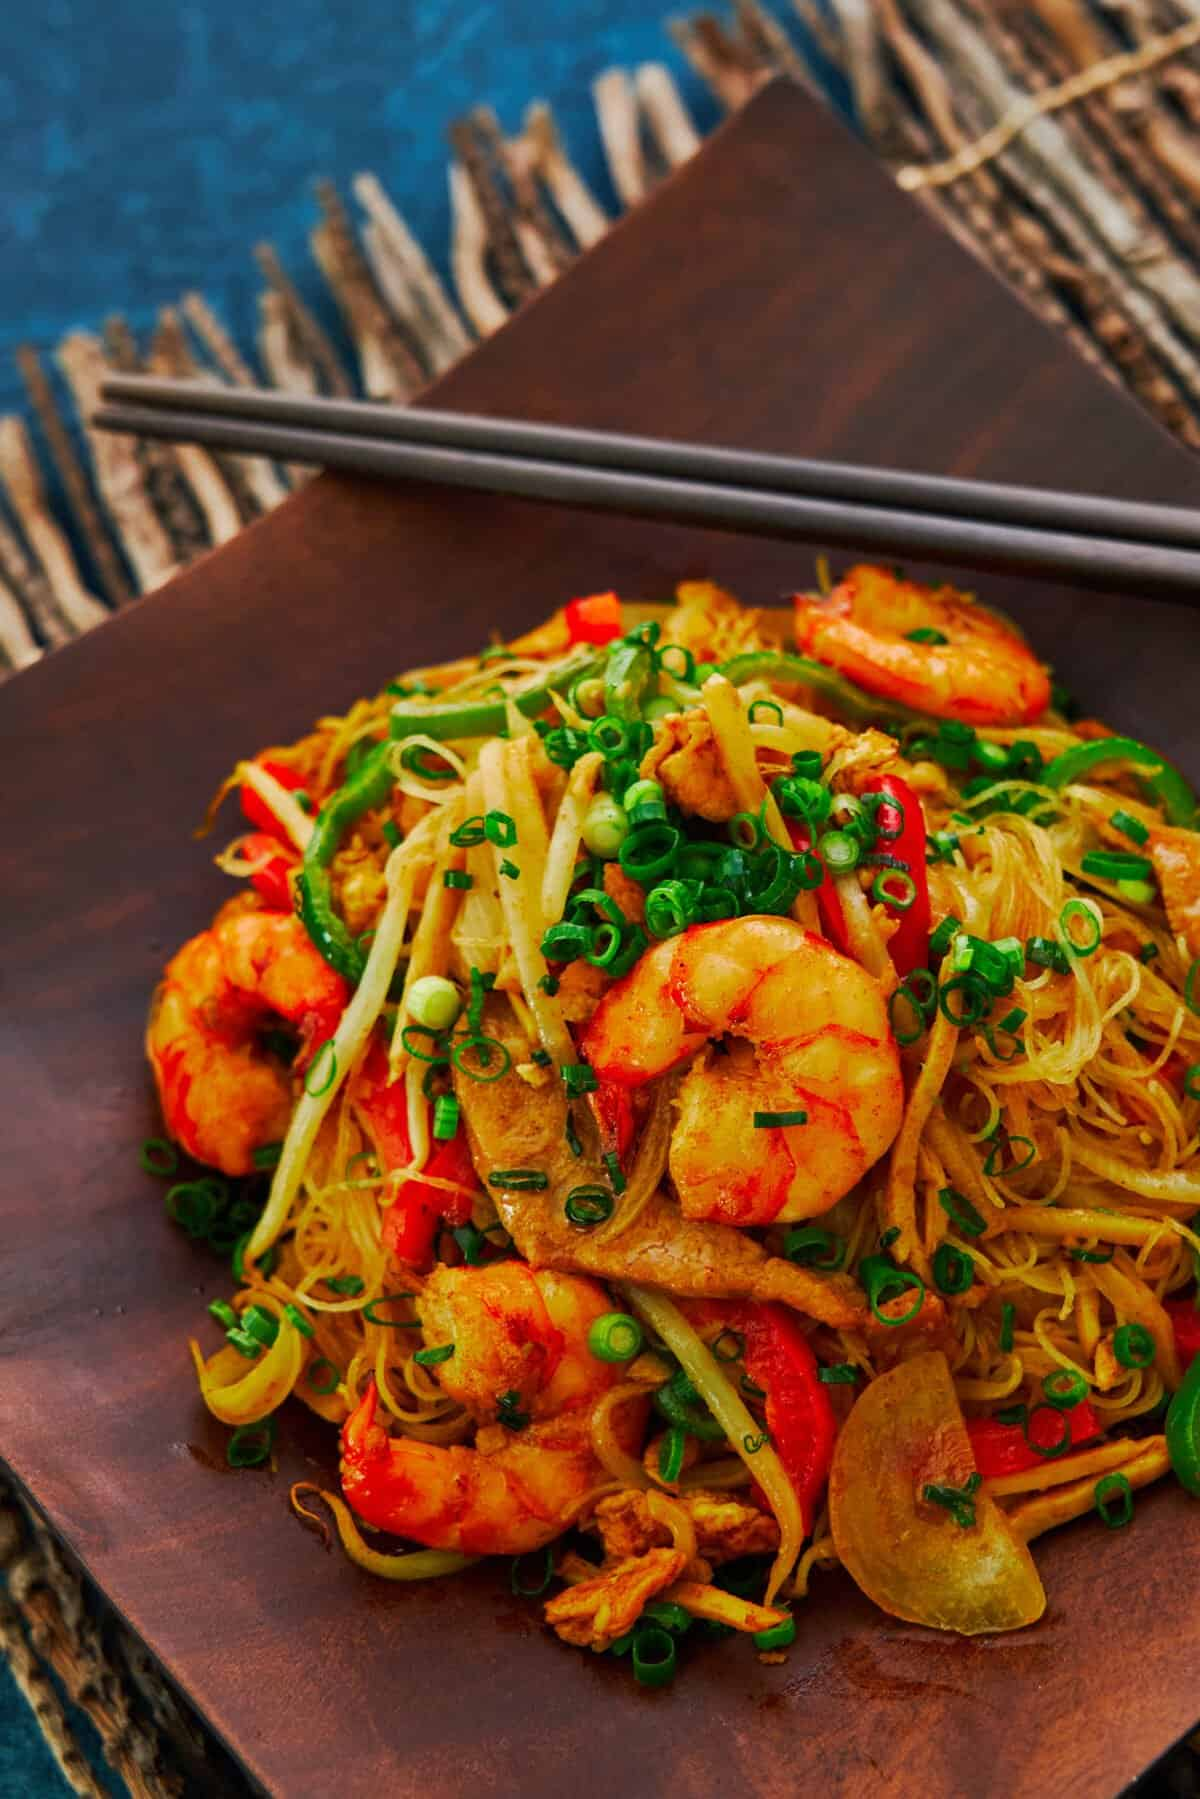 """It may not be from Singapore, but this """"Singapore"""" Noodles recipe makes a delicious stir-fry that's loaded with savory shrimp and crisp veggies."""